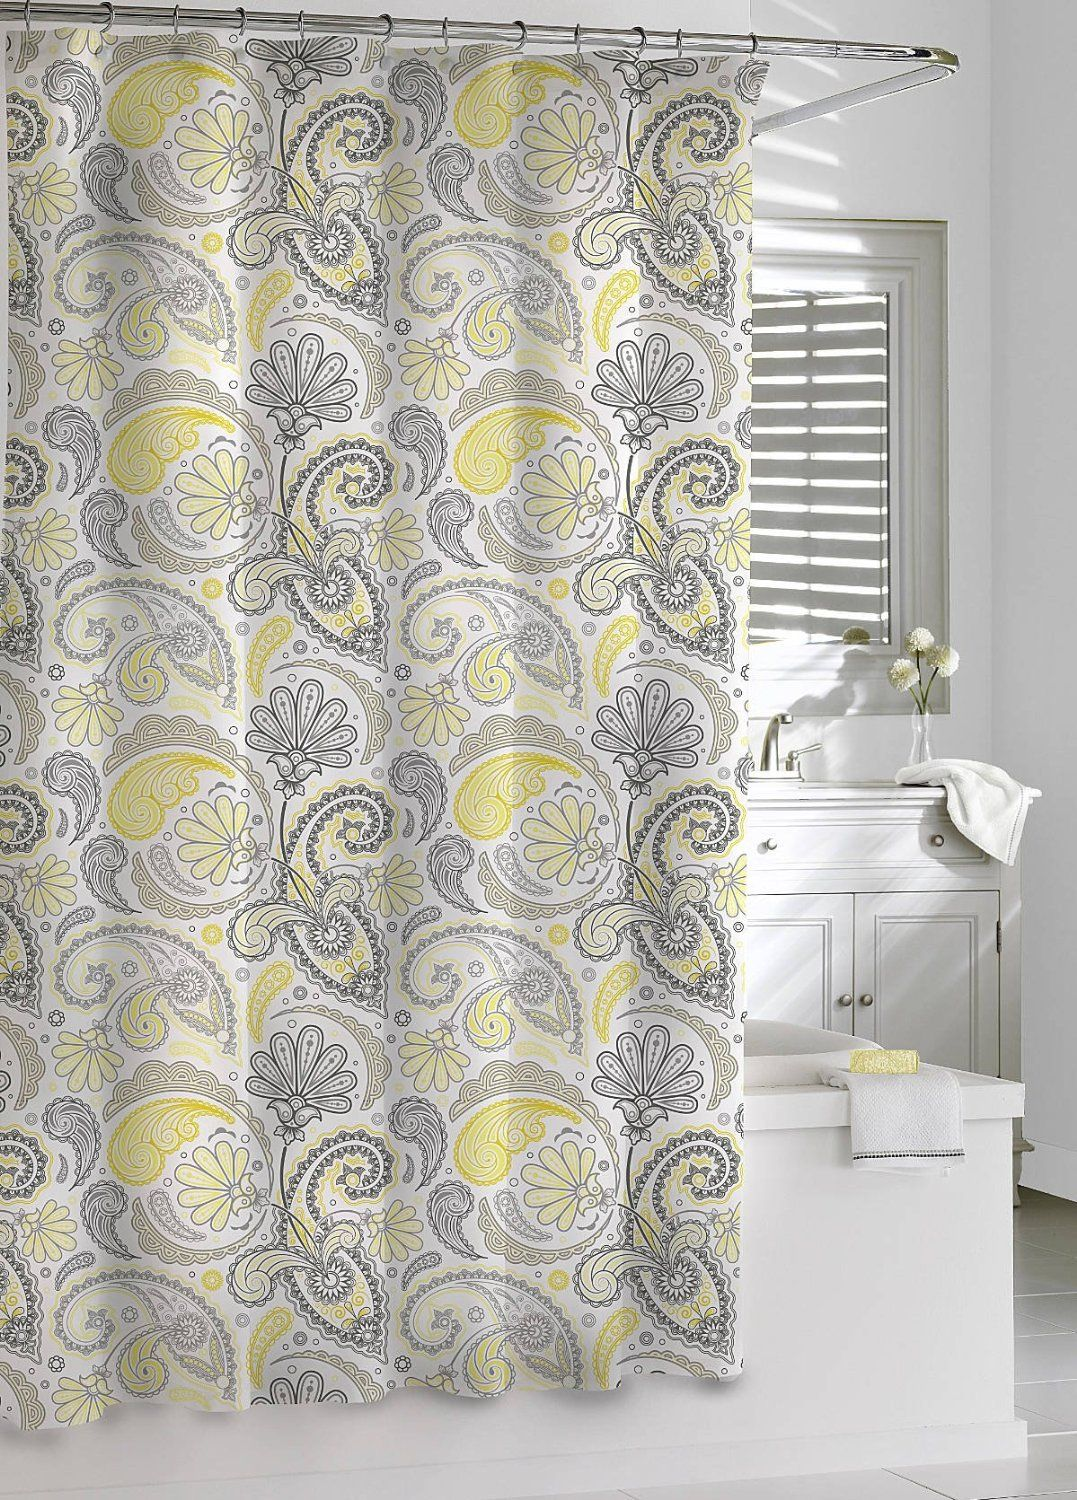 Kassatex Paisley Shower Curtain Yellow Grey 72 By 72 Inch Decorating With